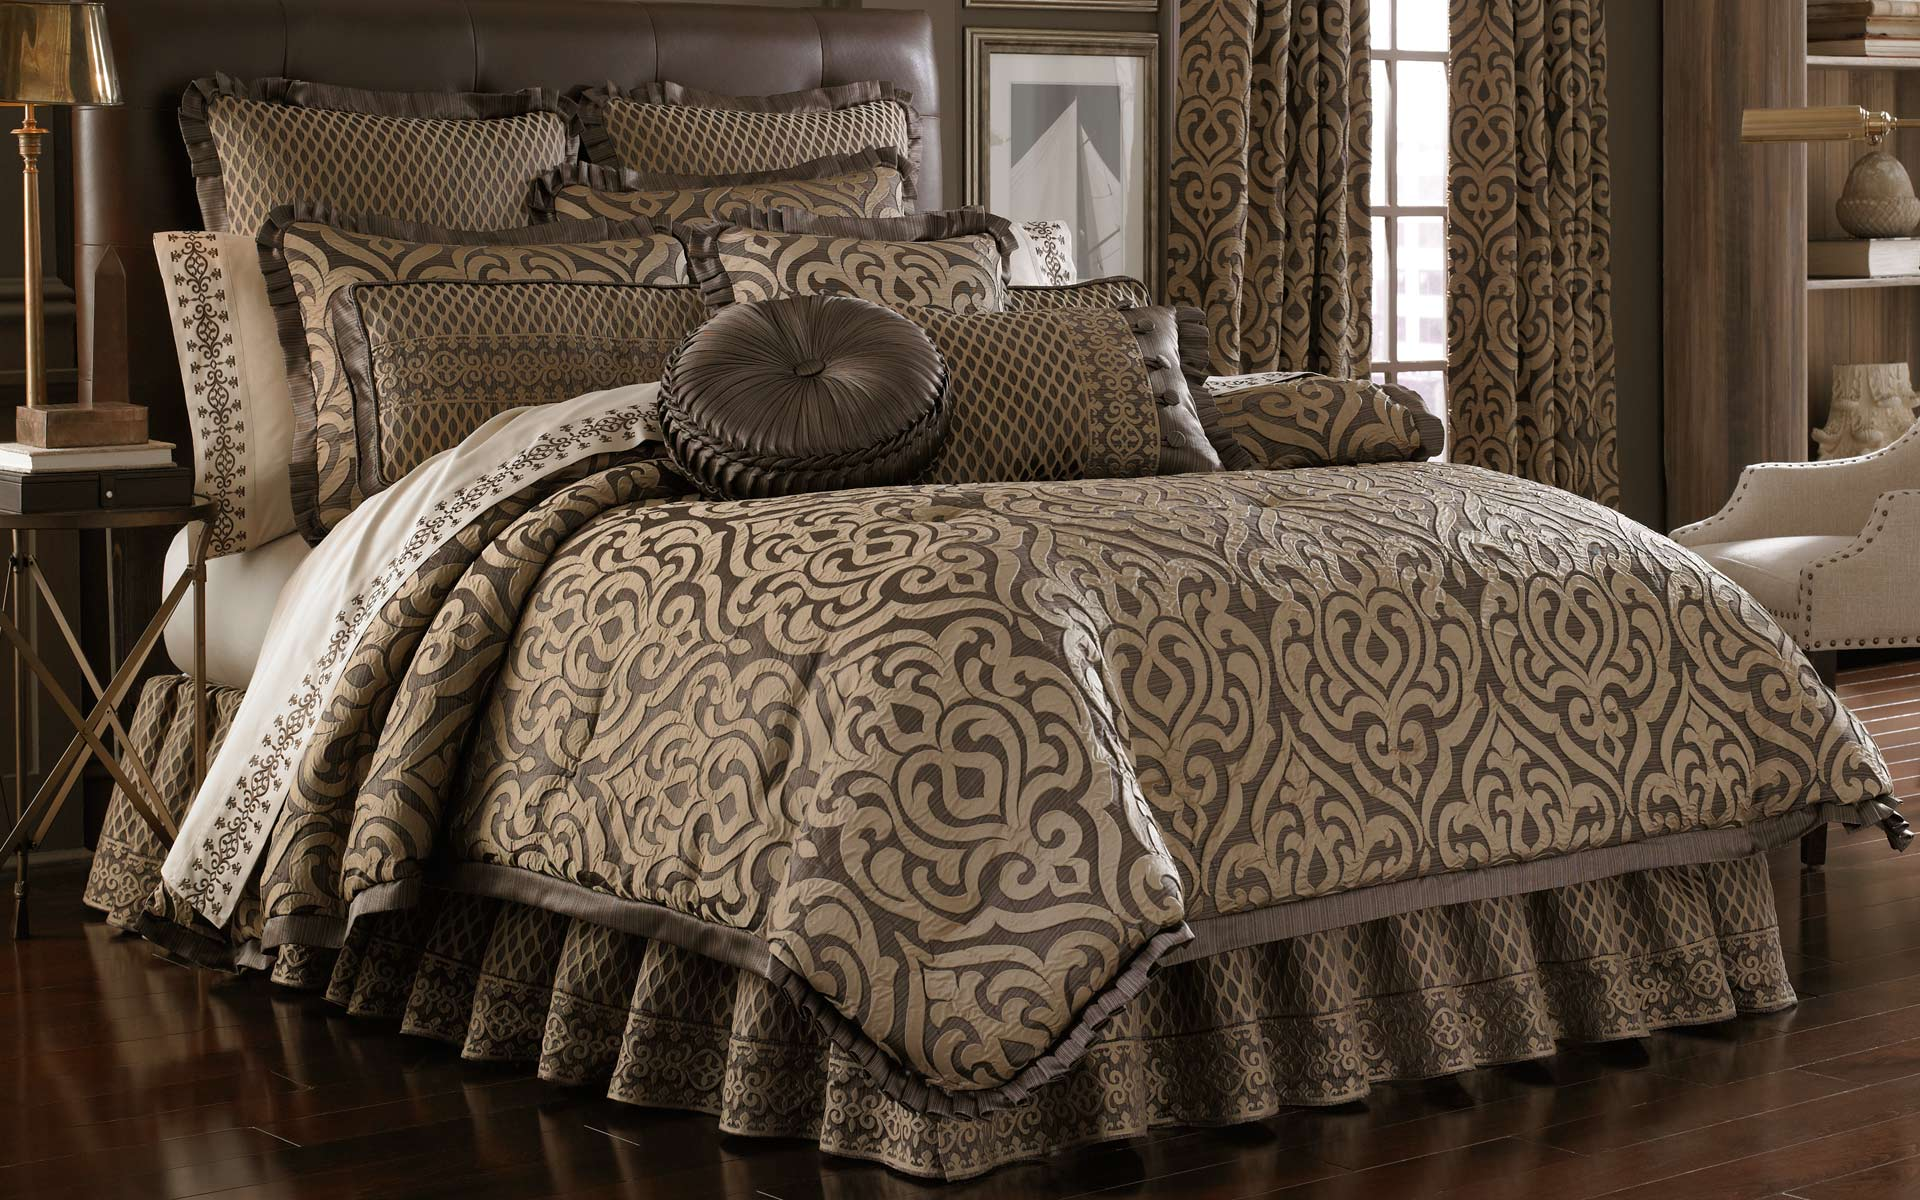 Super textile agencies products for Pictures of comforters